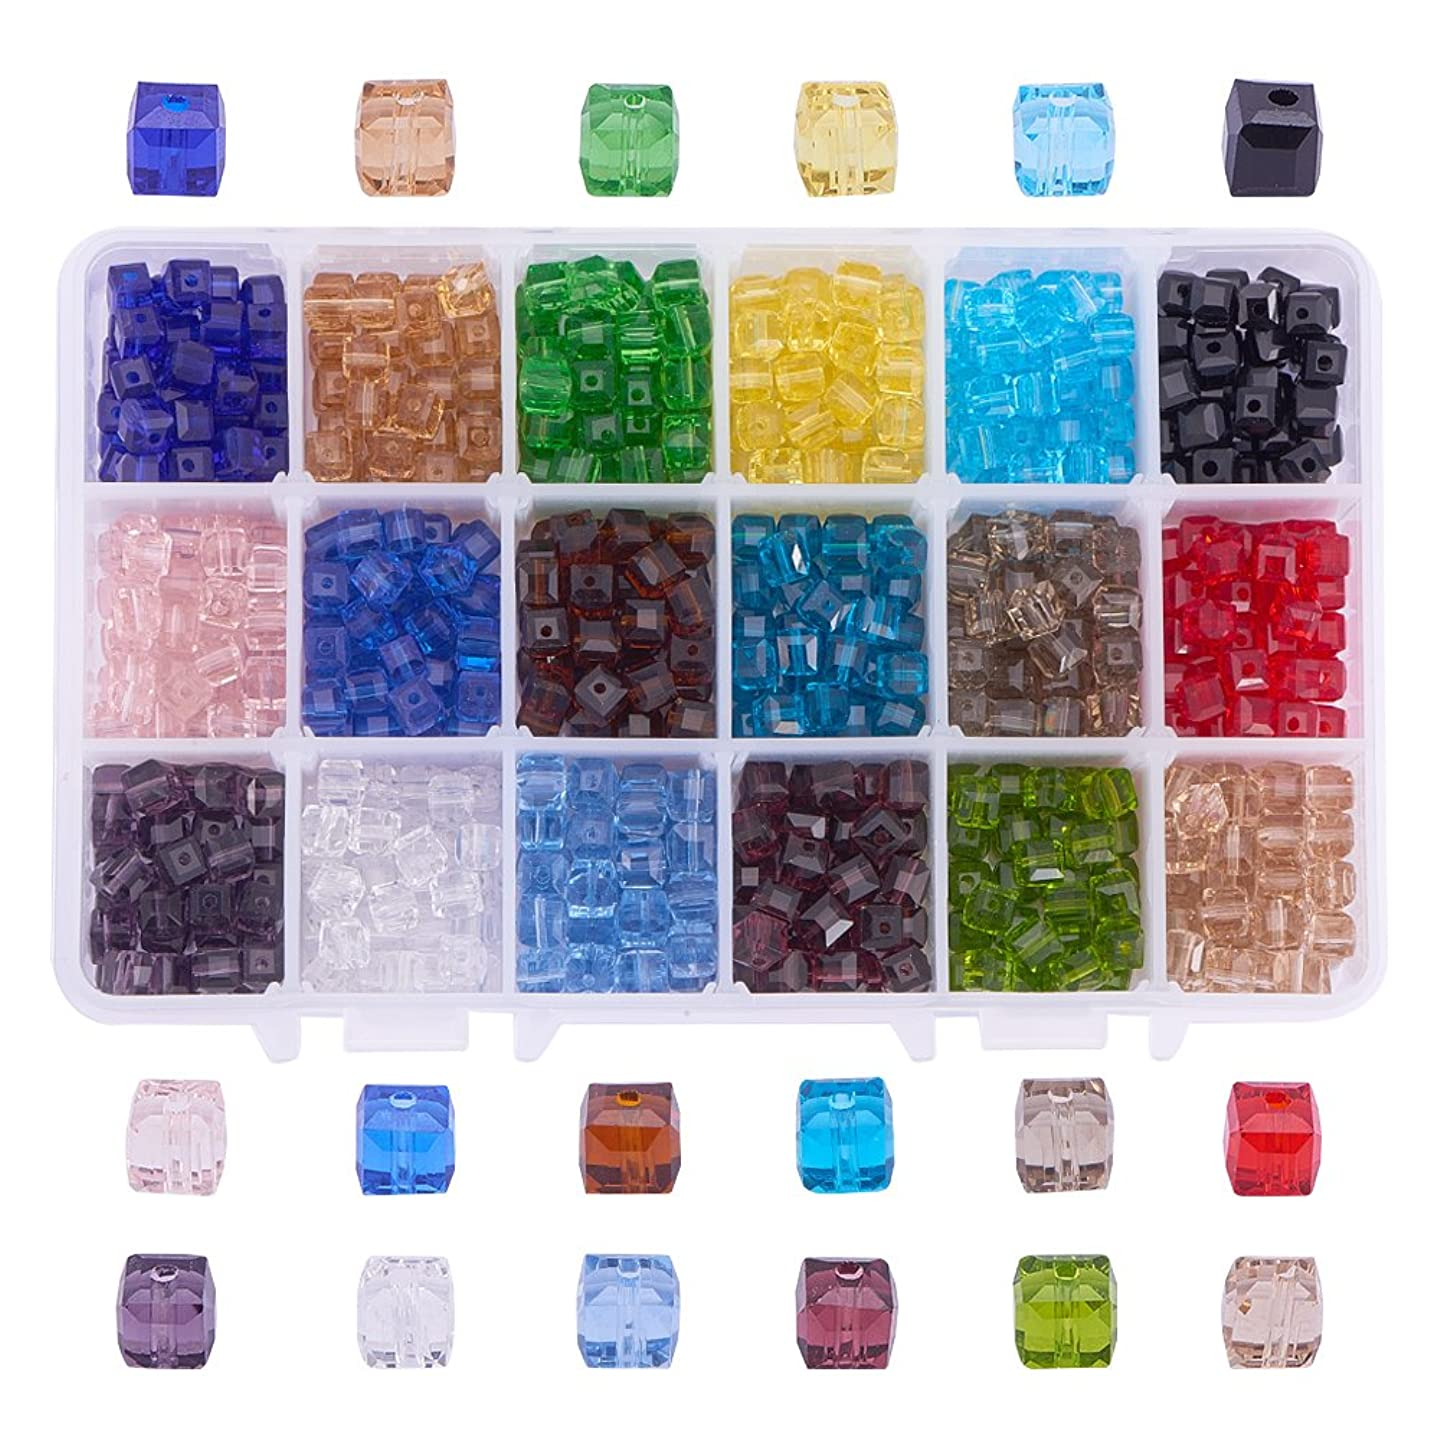 PH PandaHall 1 Box (about 900 pcs) 18 Color 6mm Crystal Beads Square Glaze Glass Bead Quartz Loose Beads for Jewelry Making Accessory